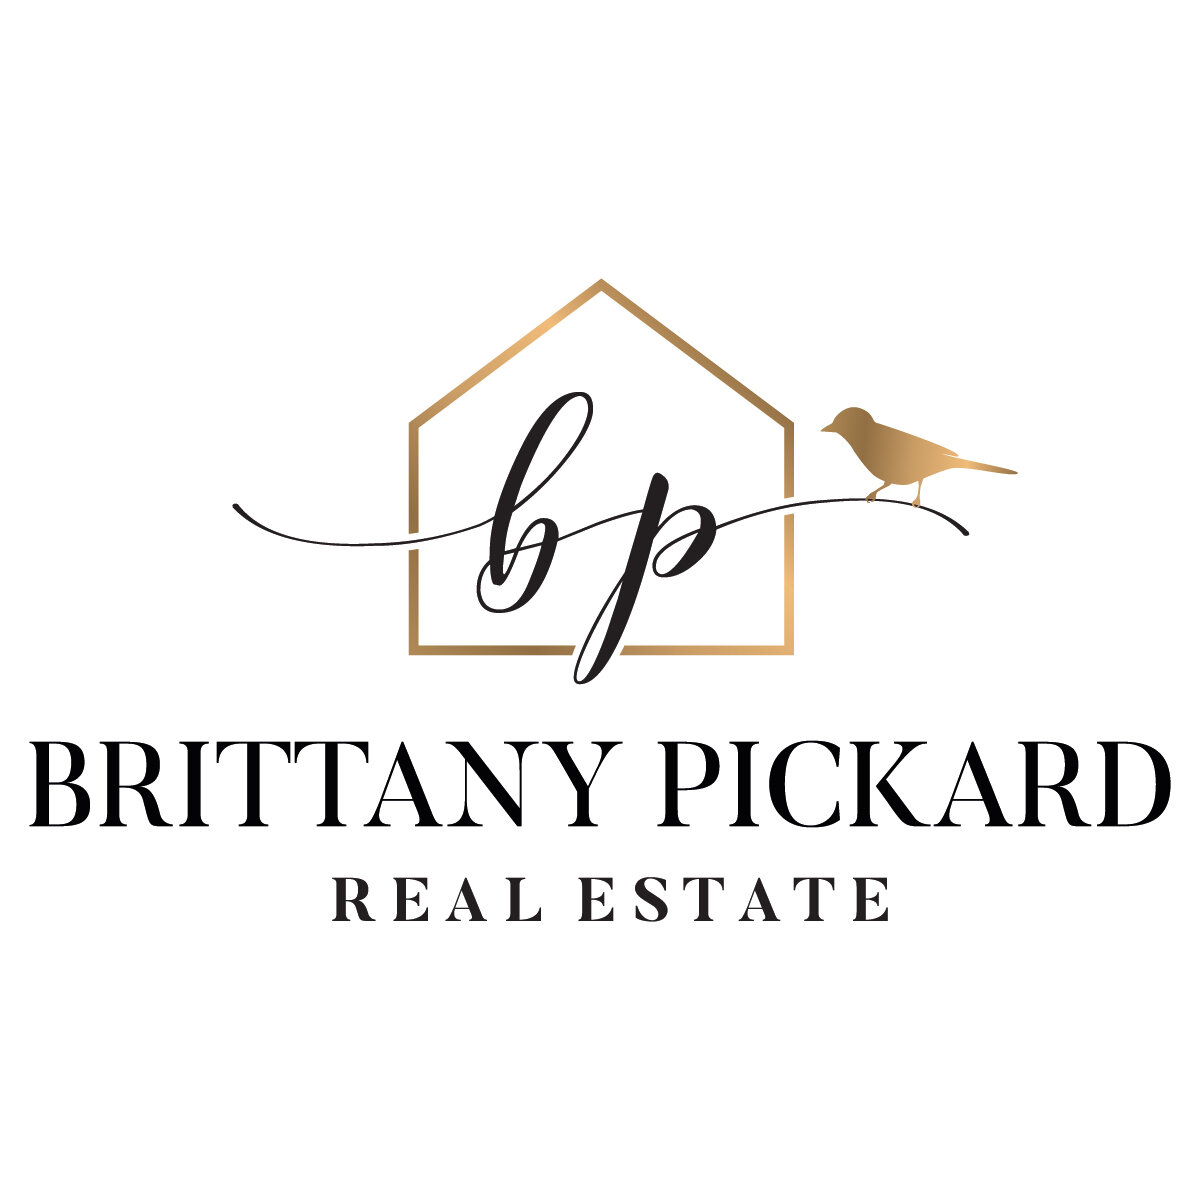 Brittany Pickard | Real Estate Vancouver Island logo